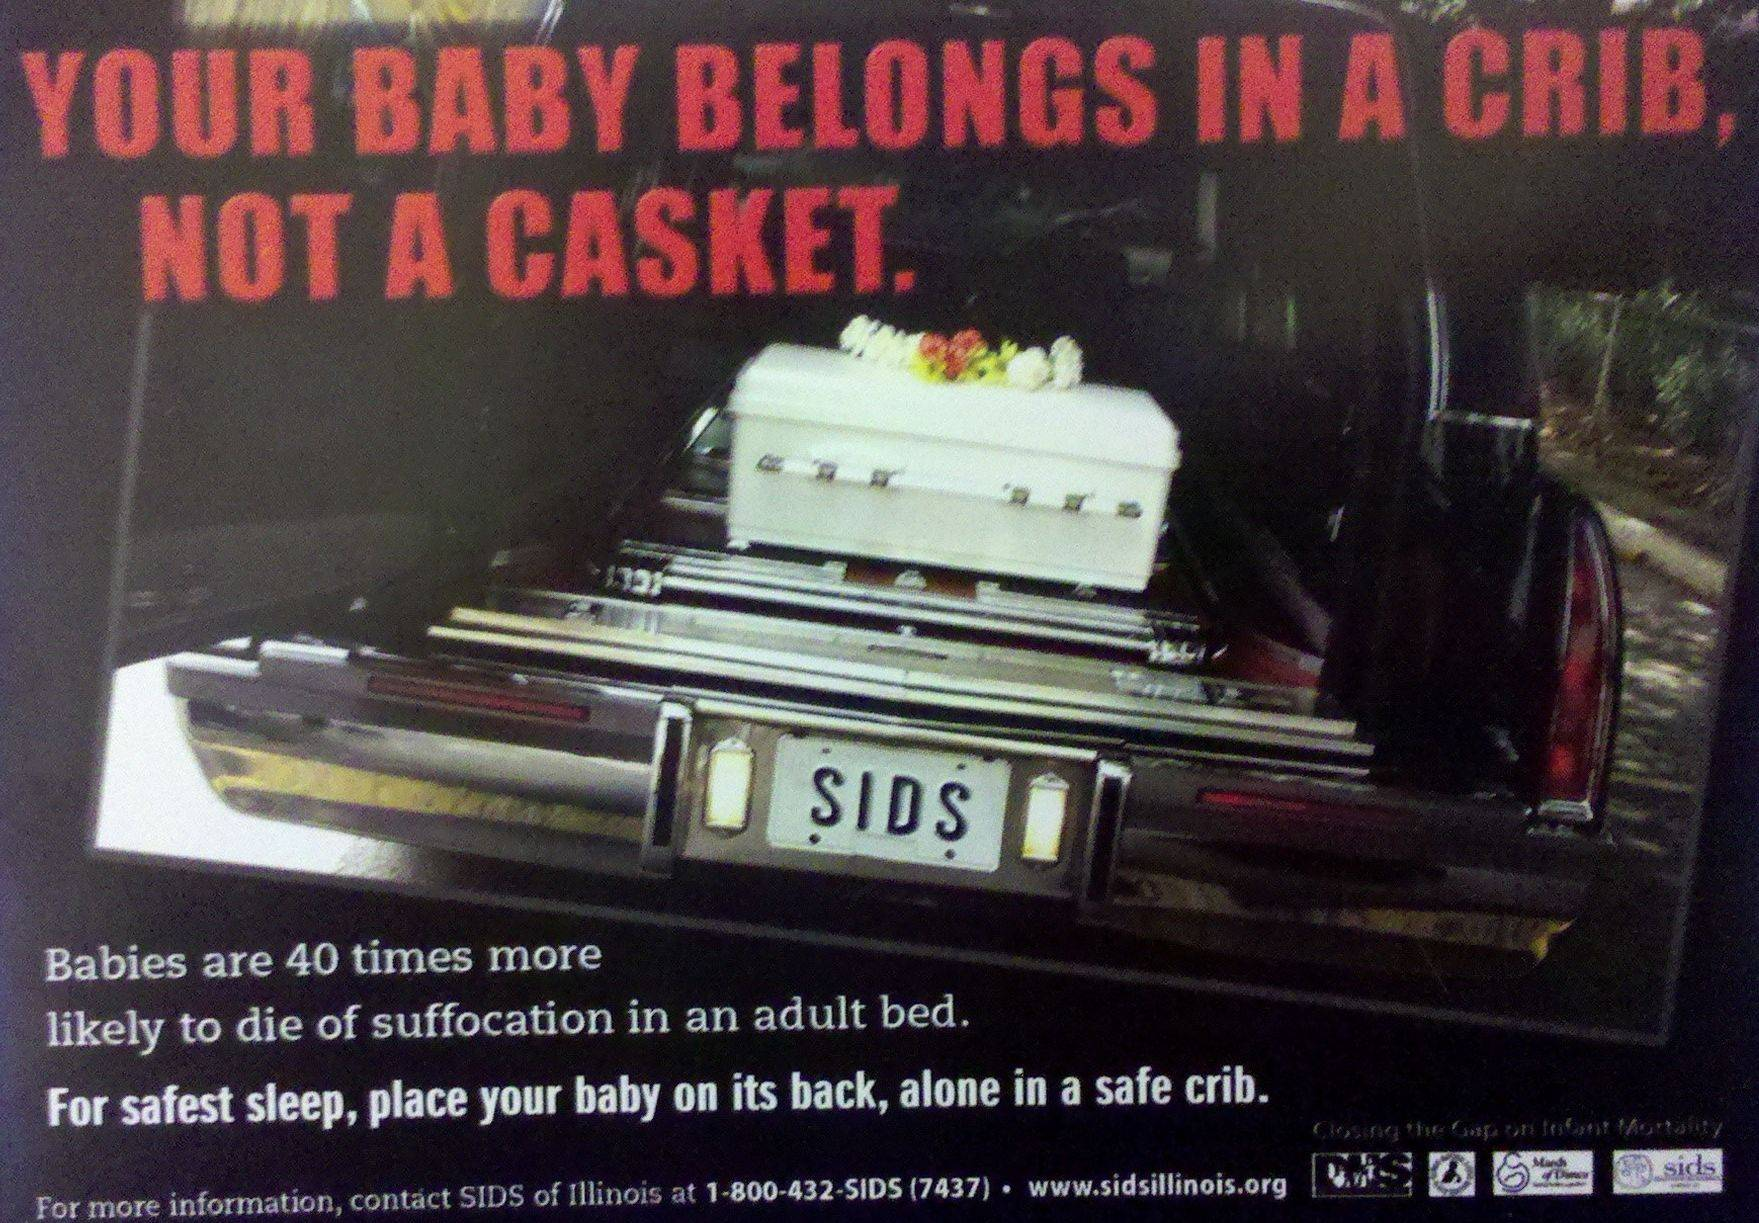 A provocative billboard advertisement campaign launched by SIDS of Illinois points out the dangers of co-sleeping for babies.